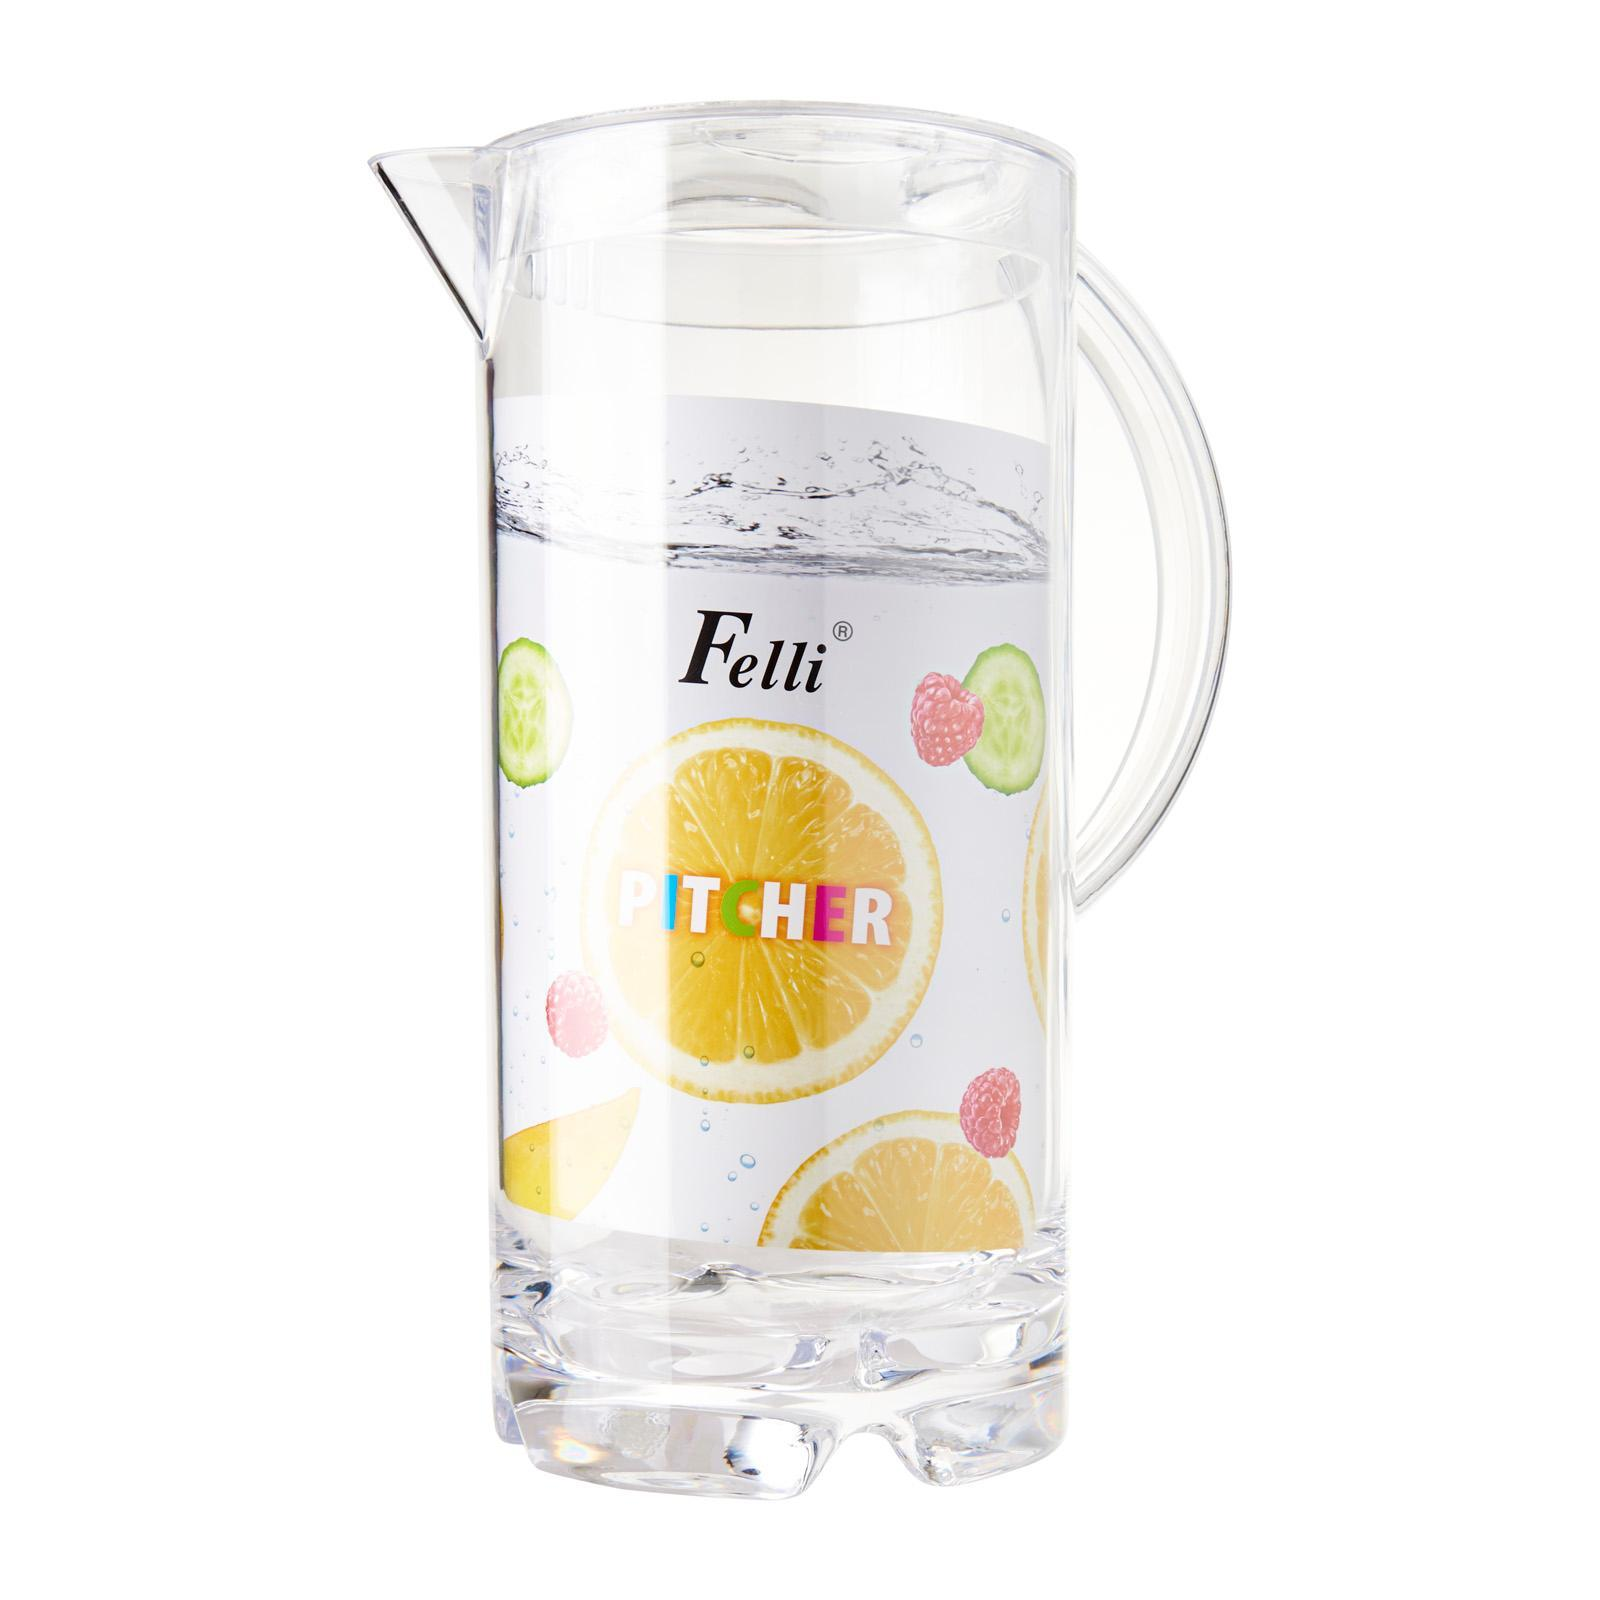 Felli Water Pitcher 2.0L